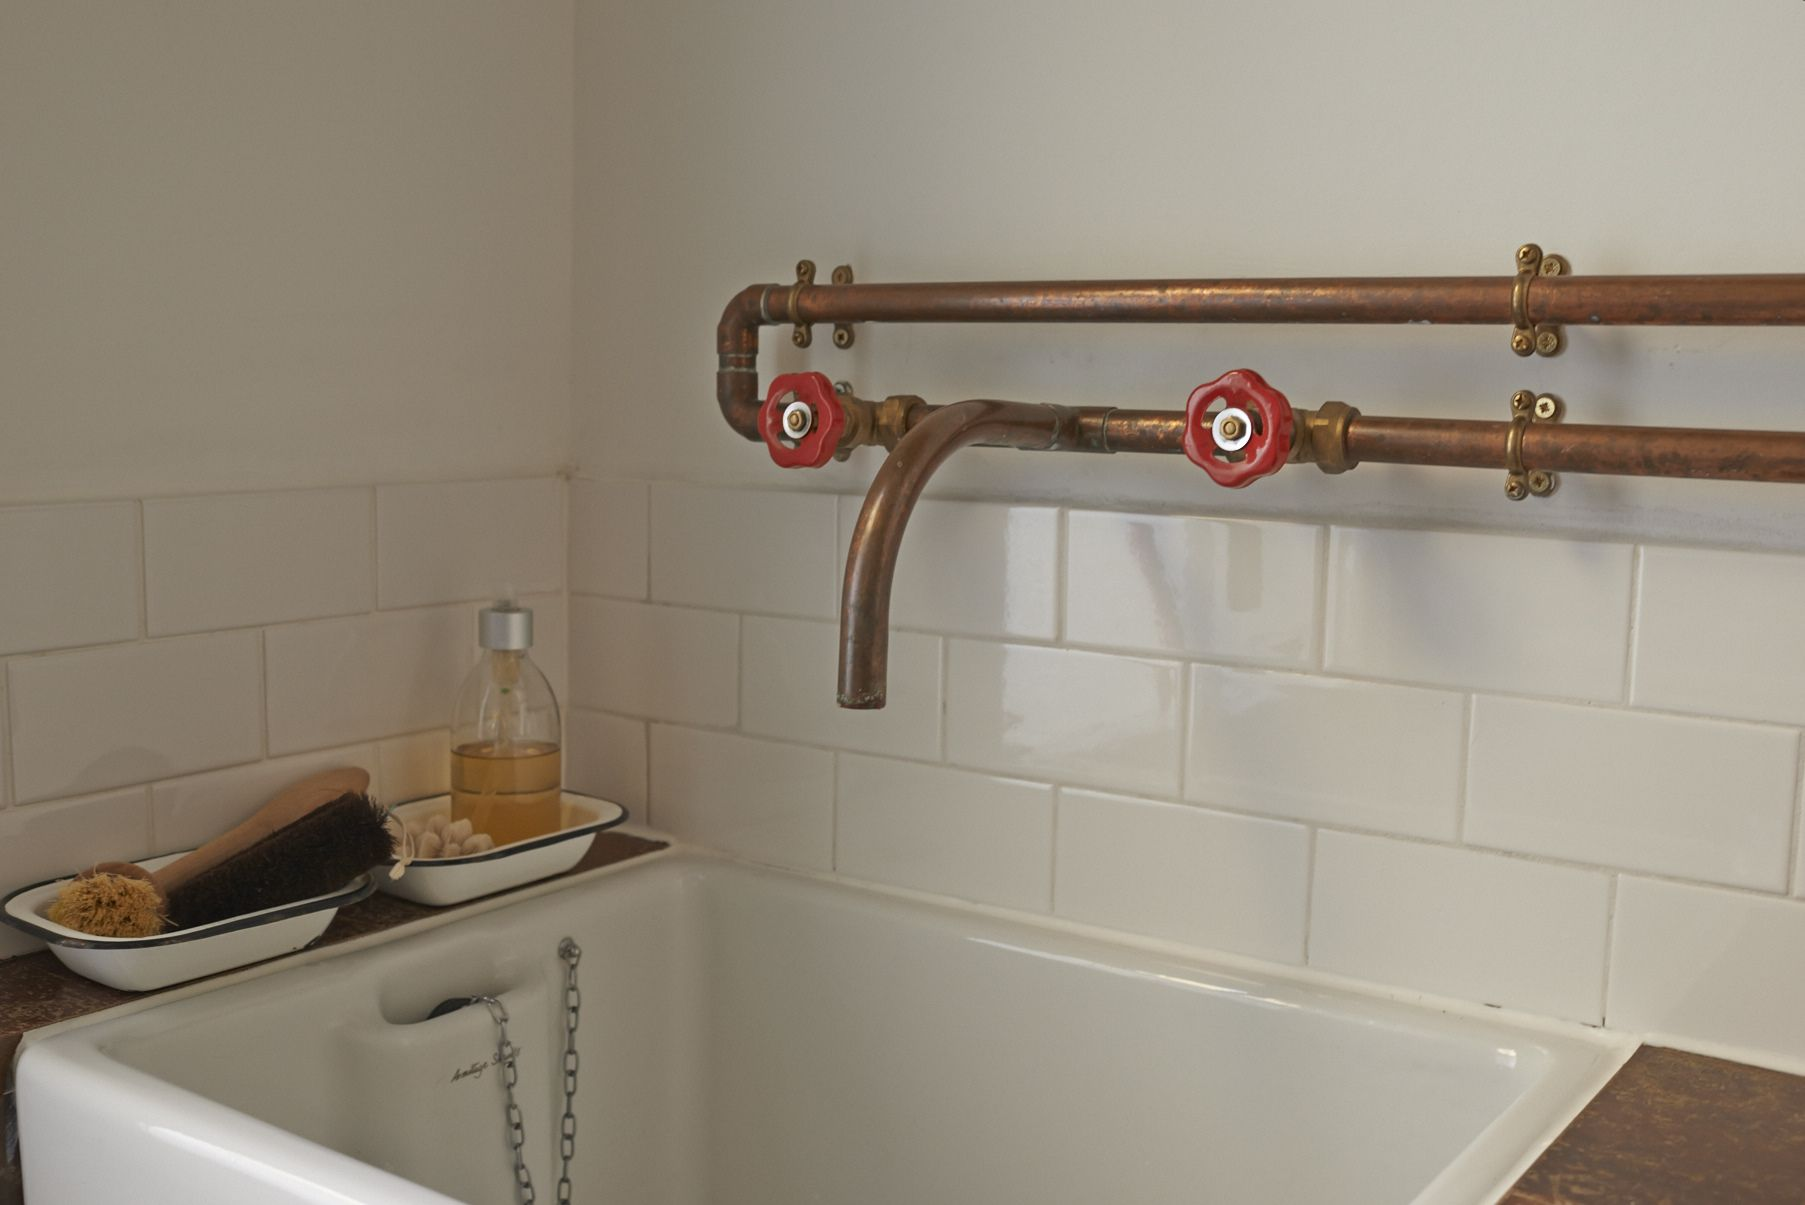 Copper Taps Copper Taps Copper Faucets Dans La Cuisine Pinterest